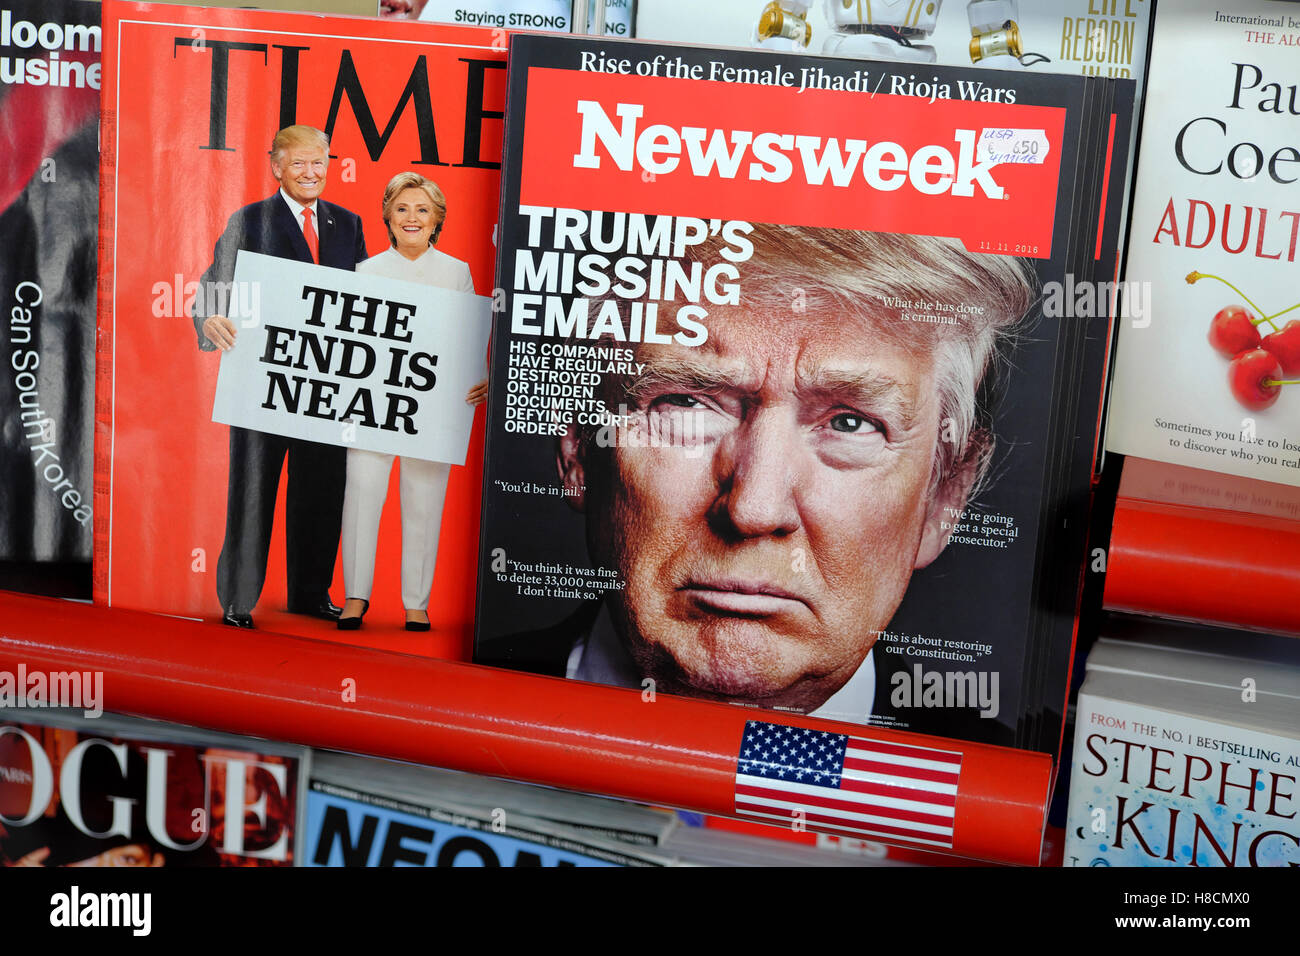 Time and Newsweek magazine front covers at newsagent Donald Trump  & Hillary Clinton during American US election - Stock Image